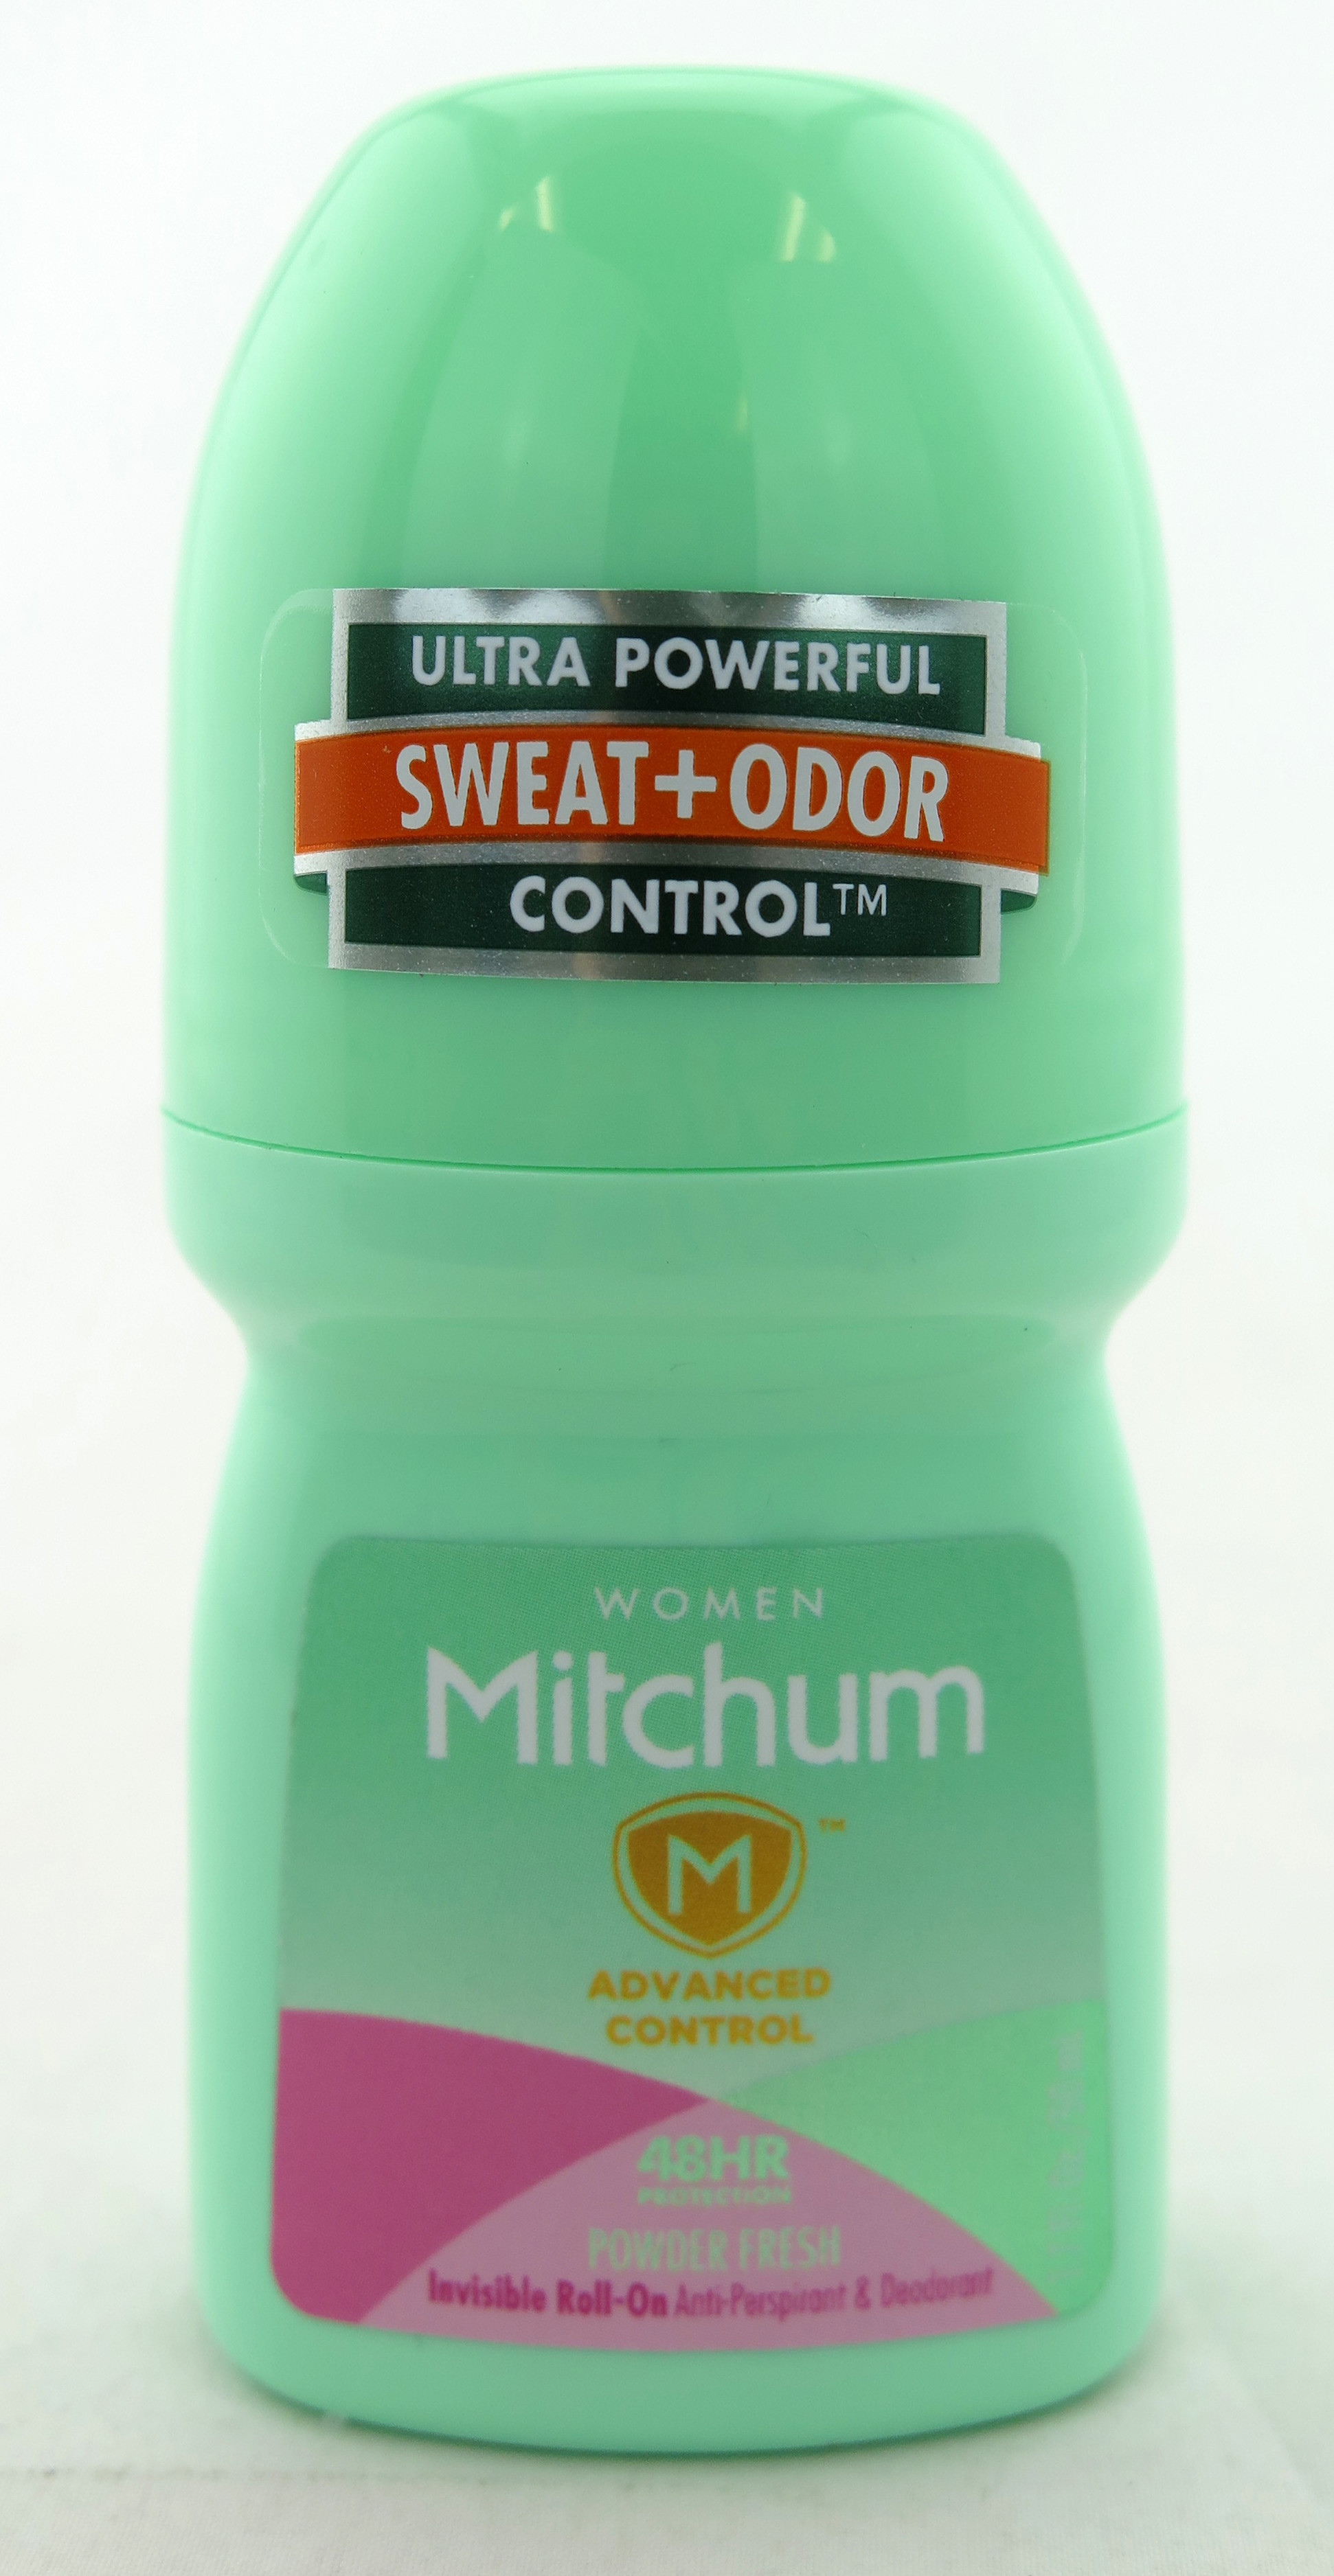 Mitchum Advanced Control Invisible Roll-On Anti-Persperant & Deodorant - For Women - Powder Fresh 1.7 oz